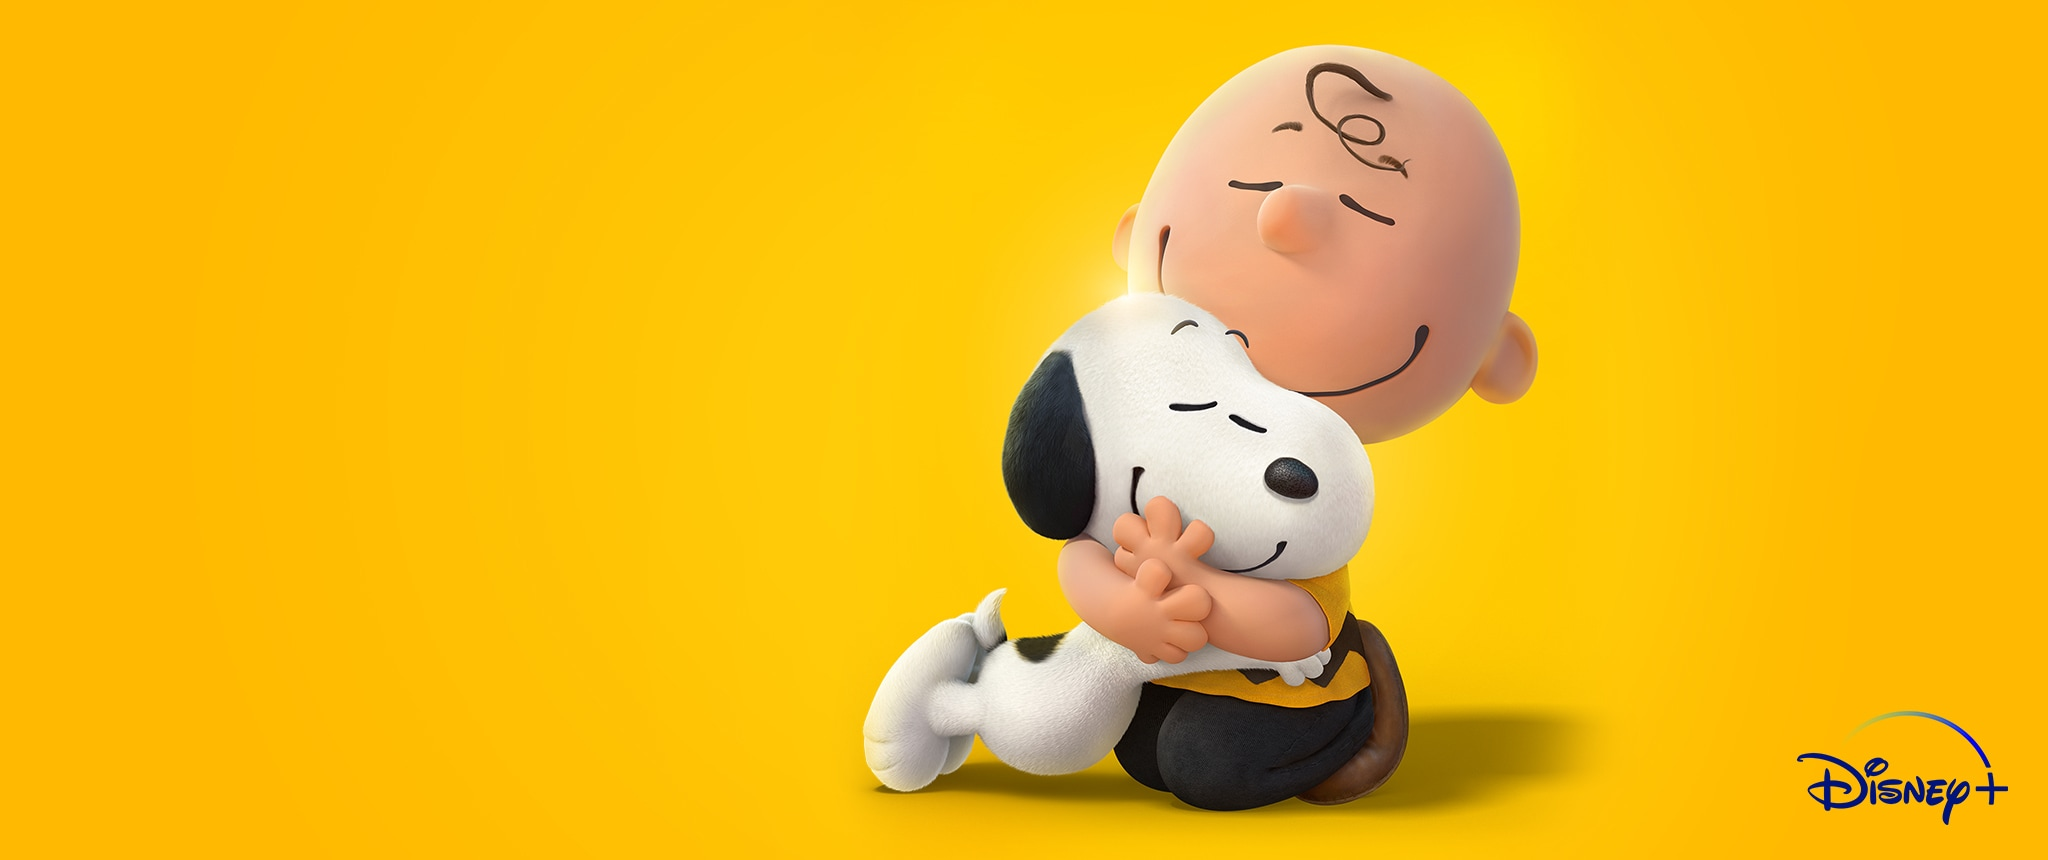 Hero - Disney+ - The Peanuts Movie